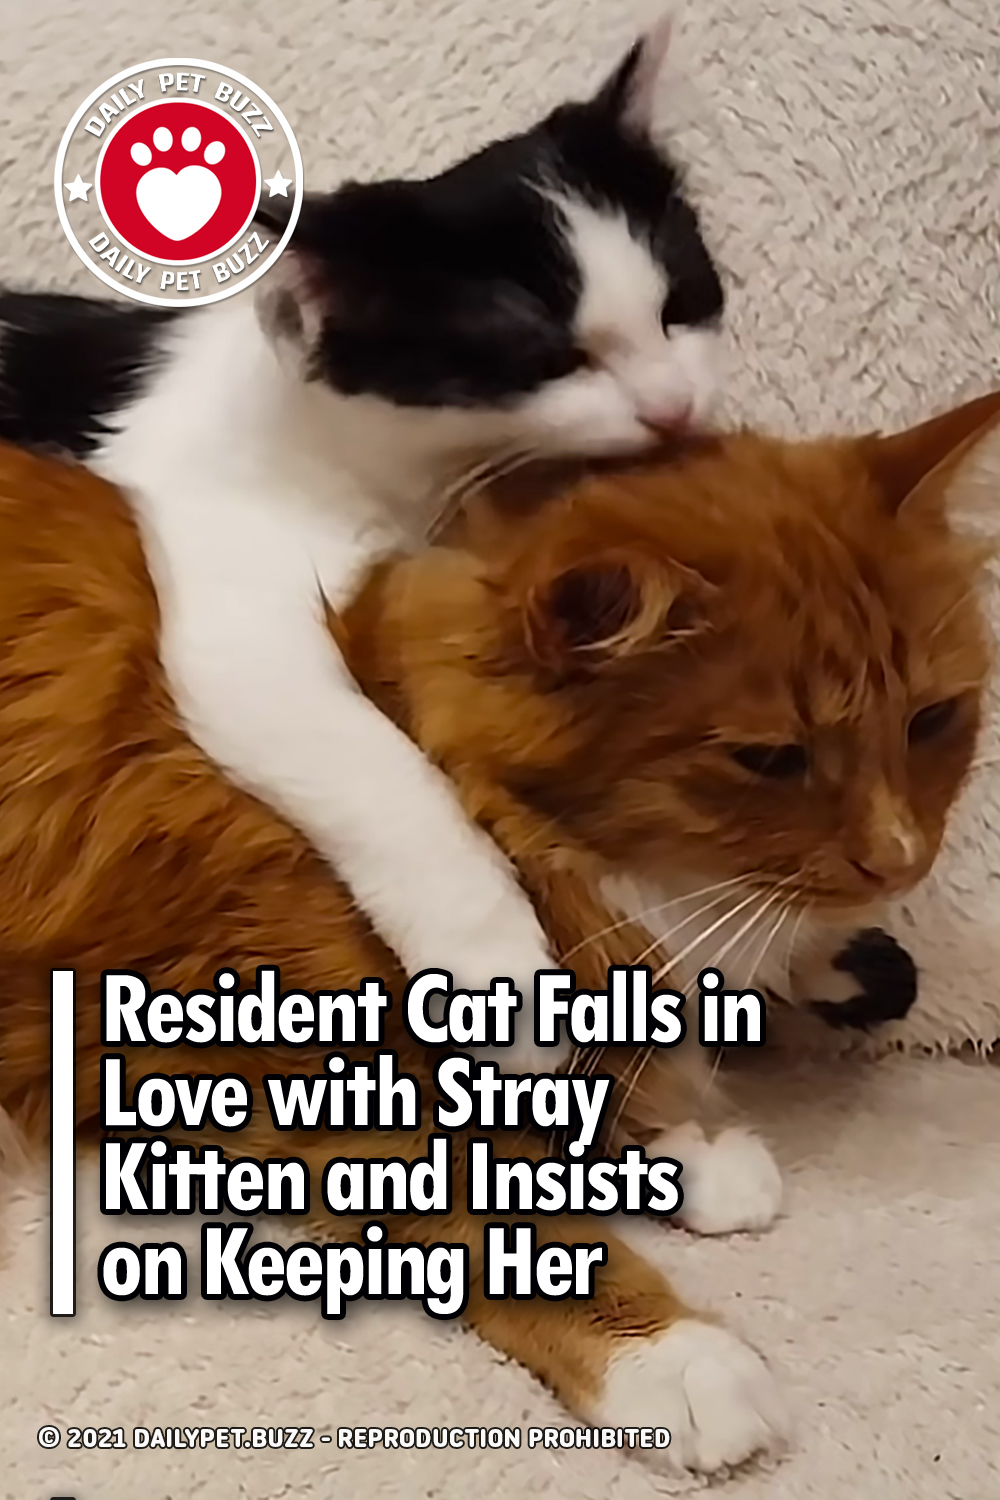 Resident Cat Falls in Love with Stray Kitten and Insists on Keeping Her